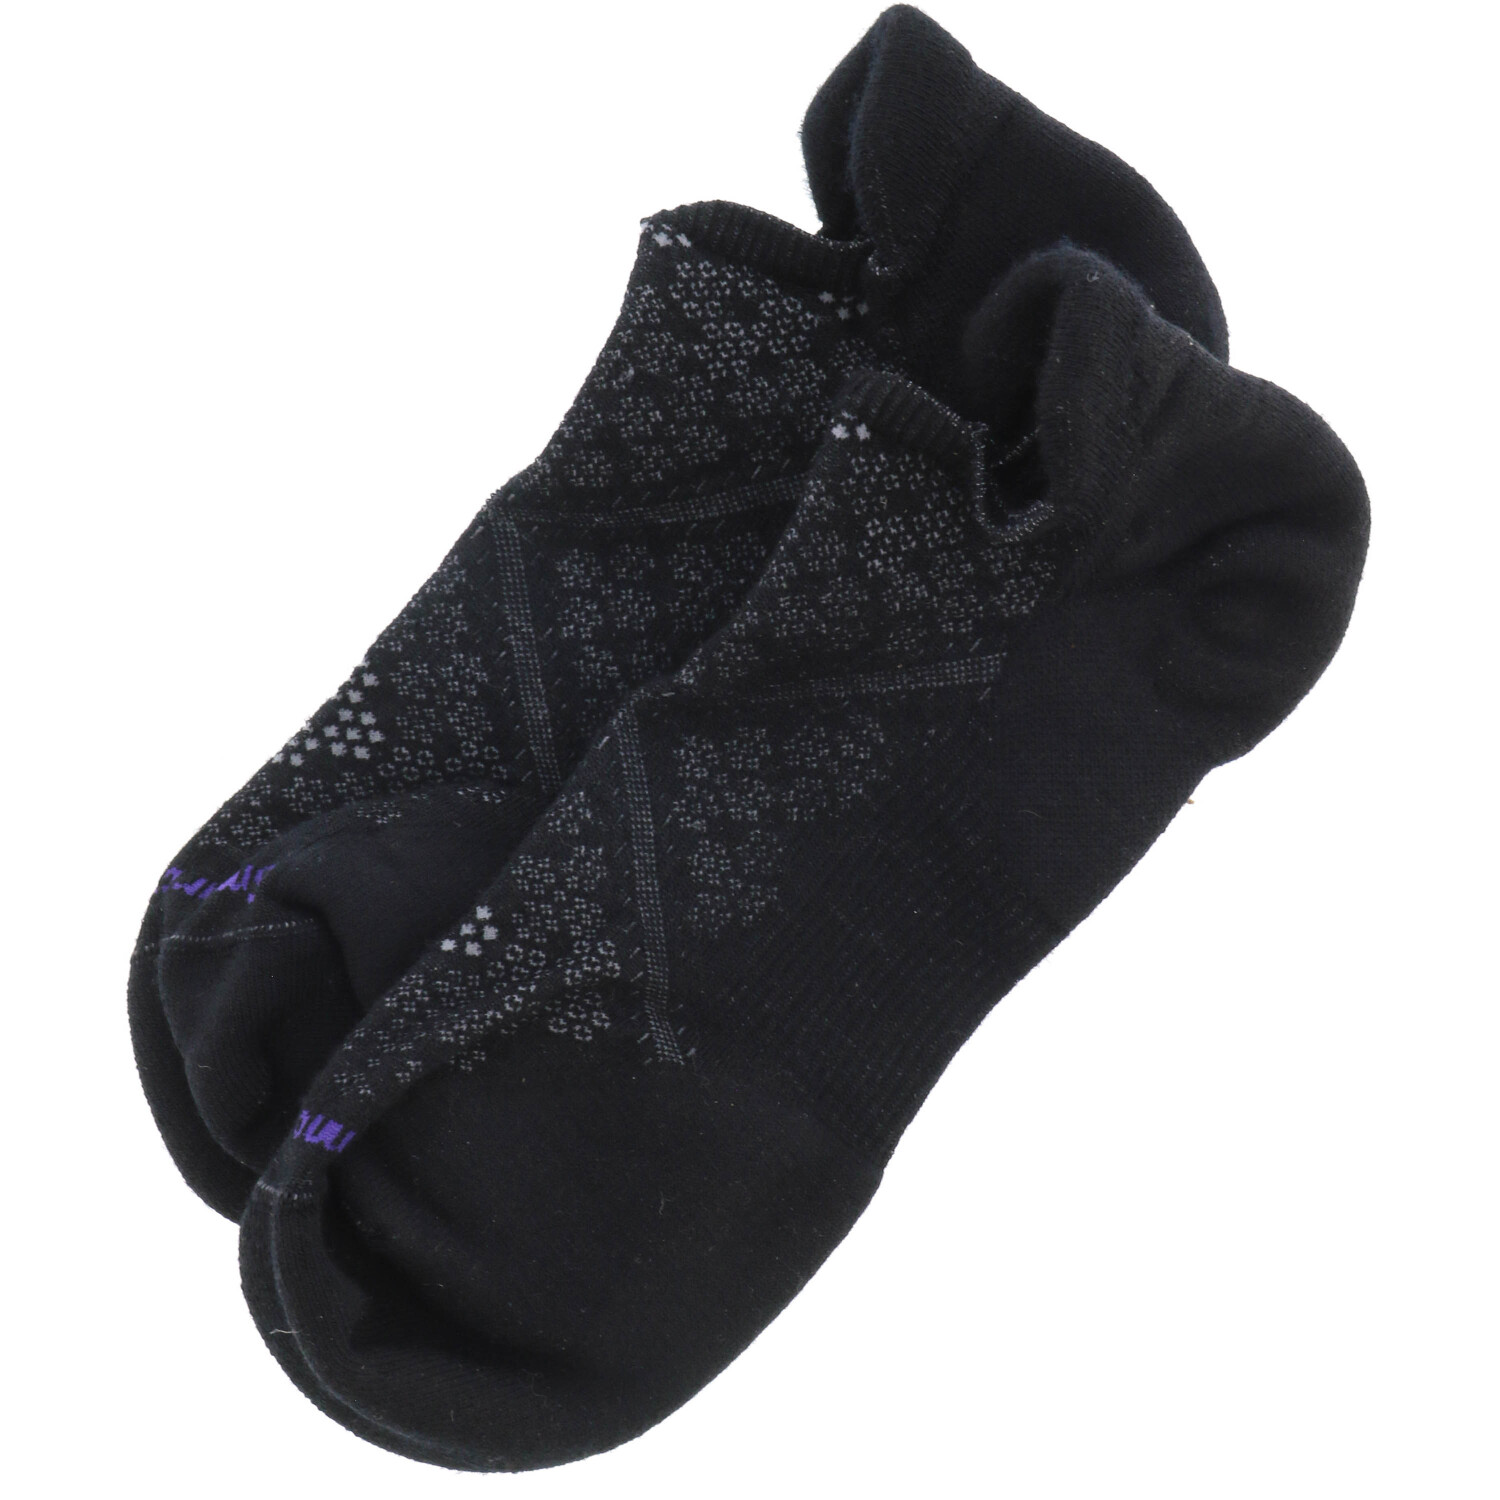 Smartwool Women's Black Phd Run Light Elite Micro Fishing Sock - L